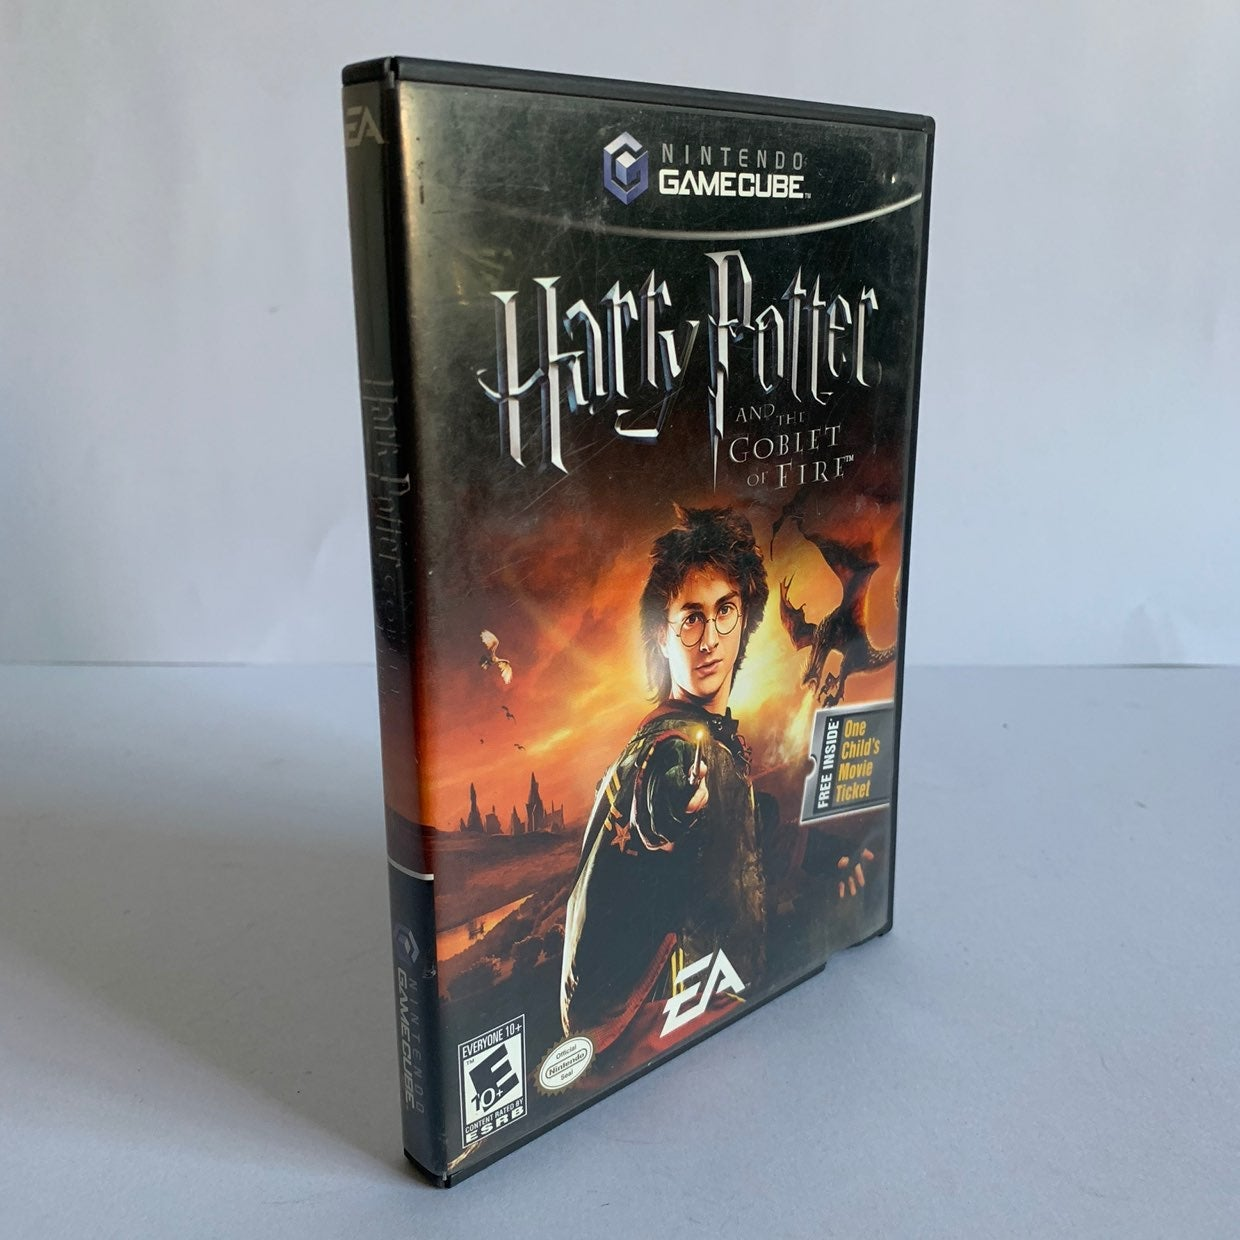 Gamecube Harry Potter and The Goblet